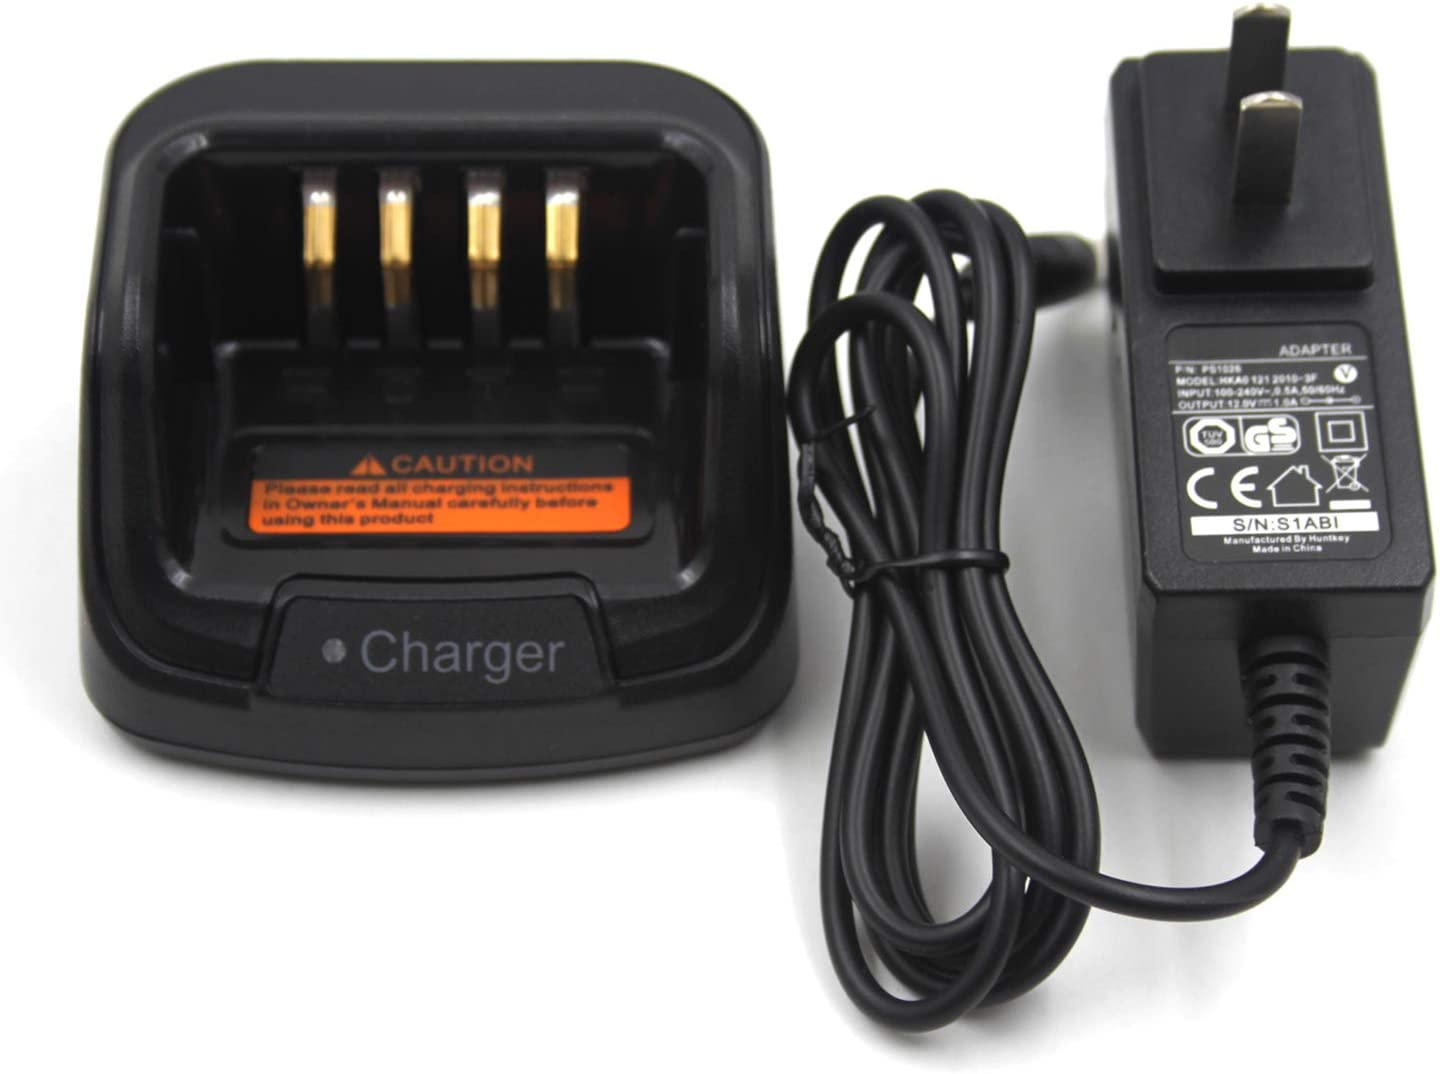 CH10A07 Battery Charger Compatible for Hytera PD782 PD502 PD505 ...